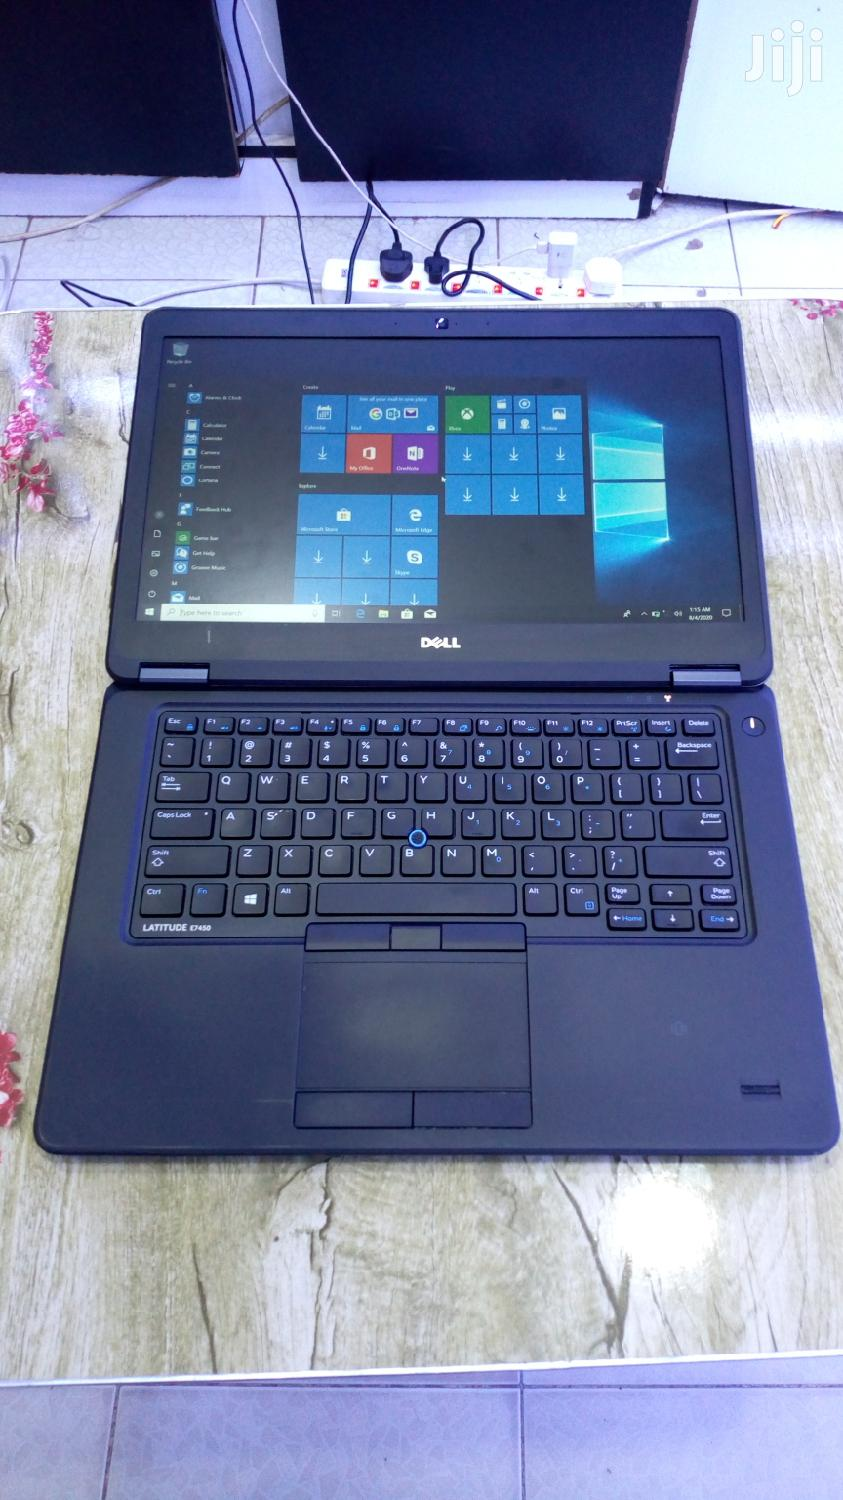 Laptop Dell Latitude E7450 8GB Intel Core I7 HDD 500GB | Laptops & Computers for sale in Kampala, Central Region, Uganda